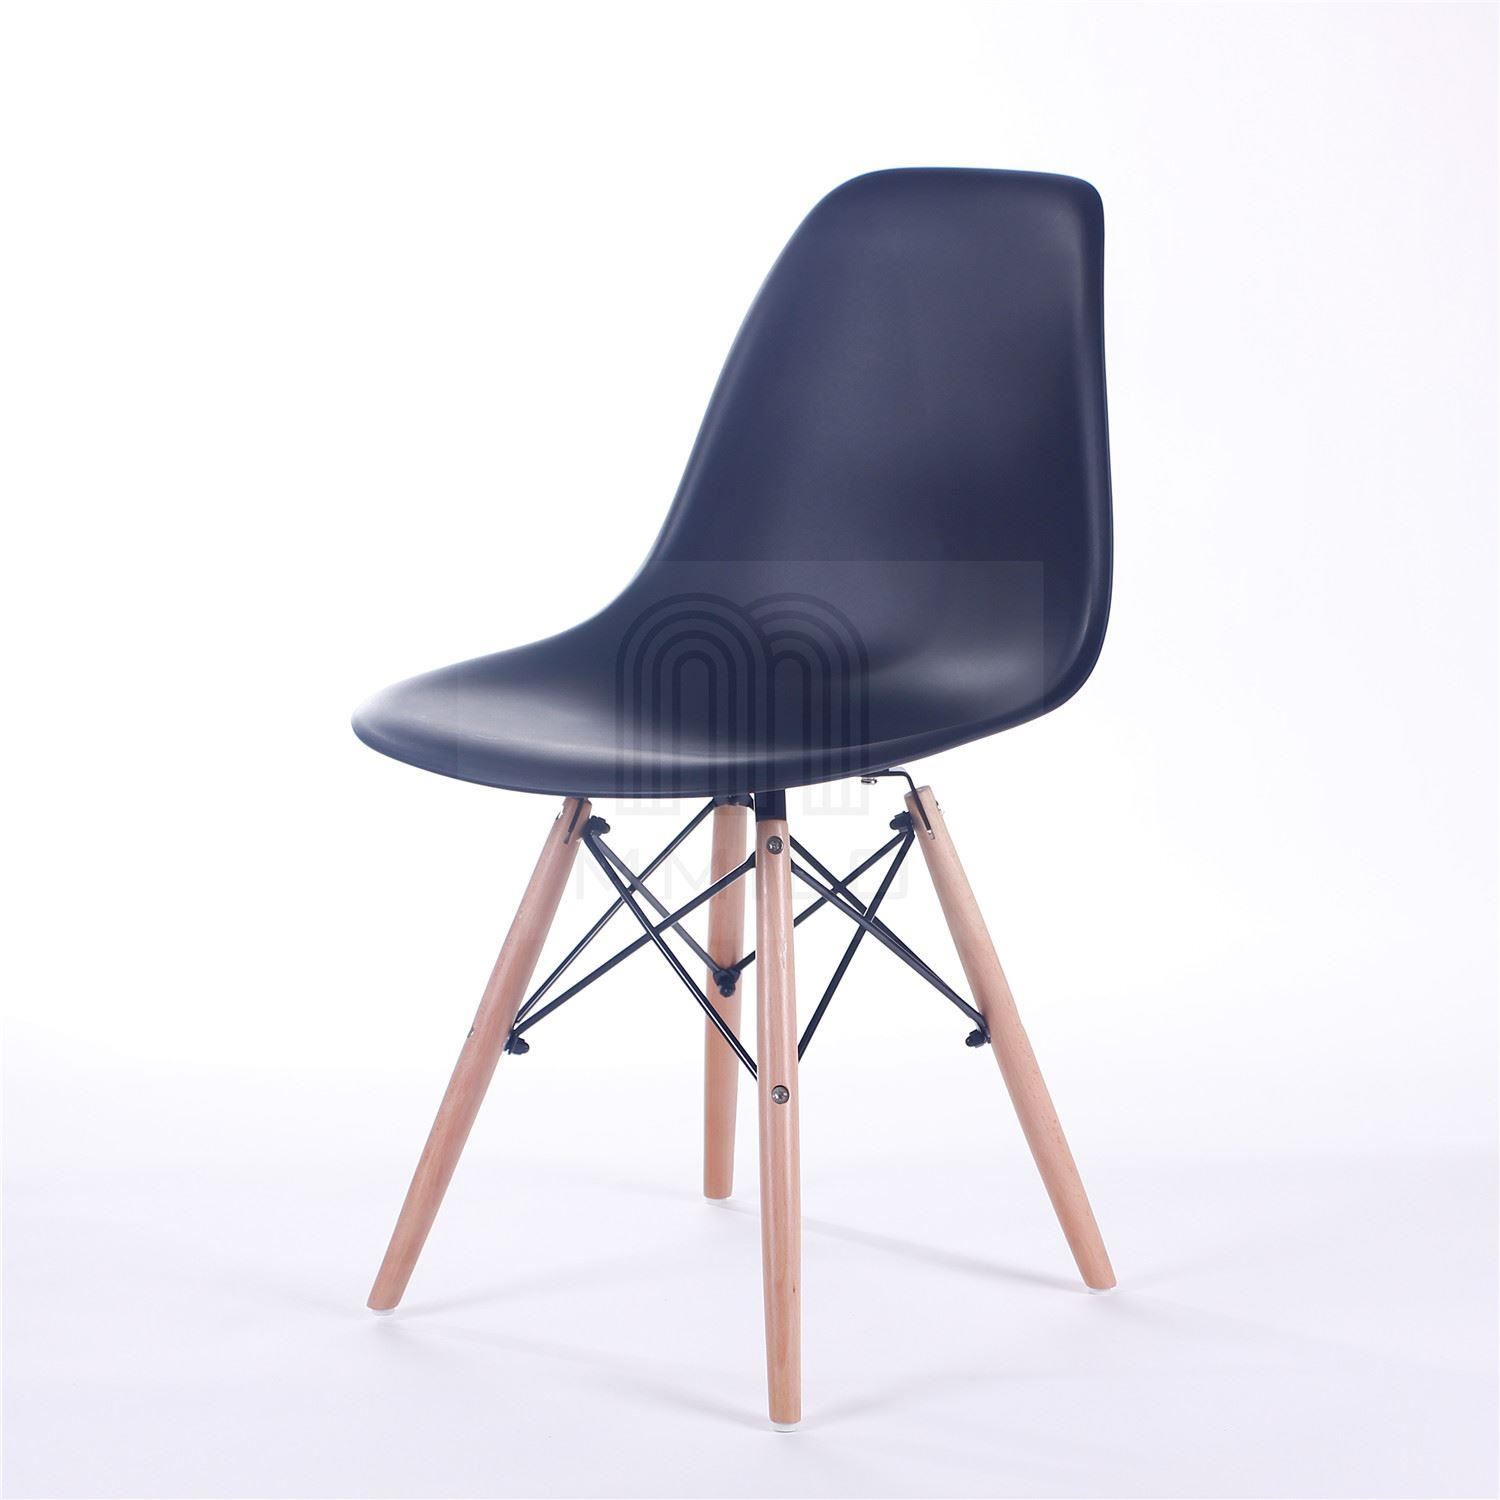 Charles Ray Eames Eiffel Inspired DSW Side Dining Chair  : bc2e4421 51b6 429c a431 f1e9ce84e60a from www.ebay.co.uk size 1500 x 1500 jpeg 88kB